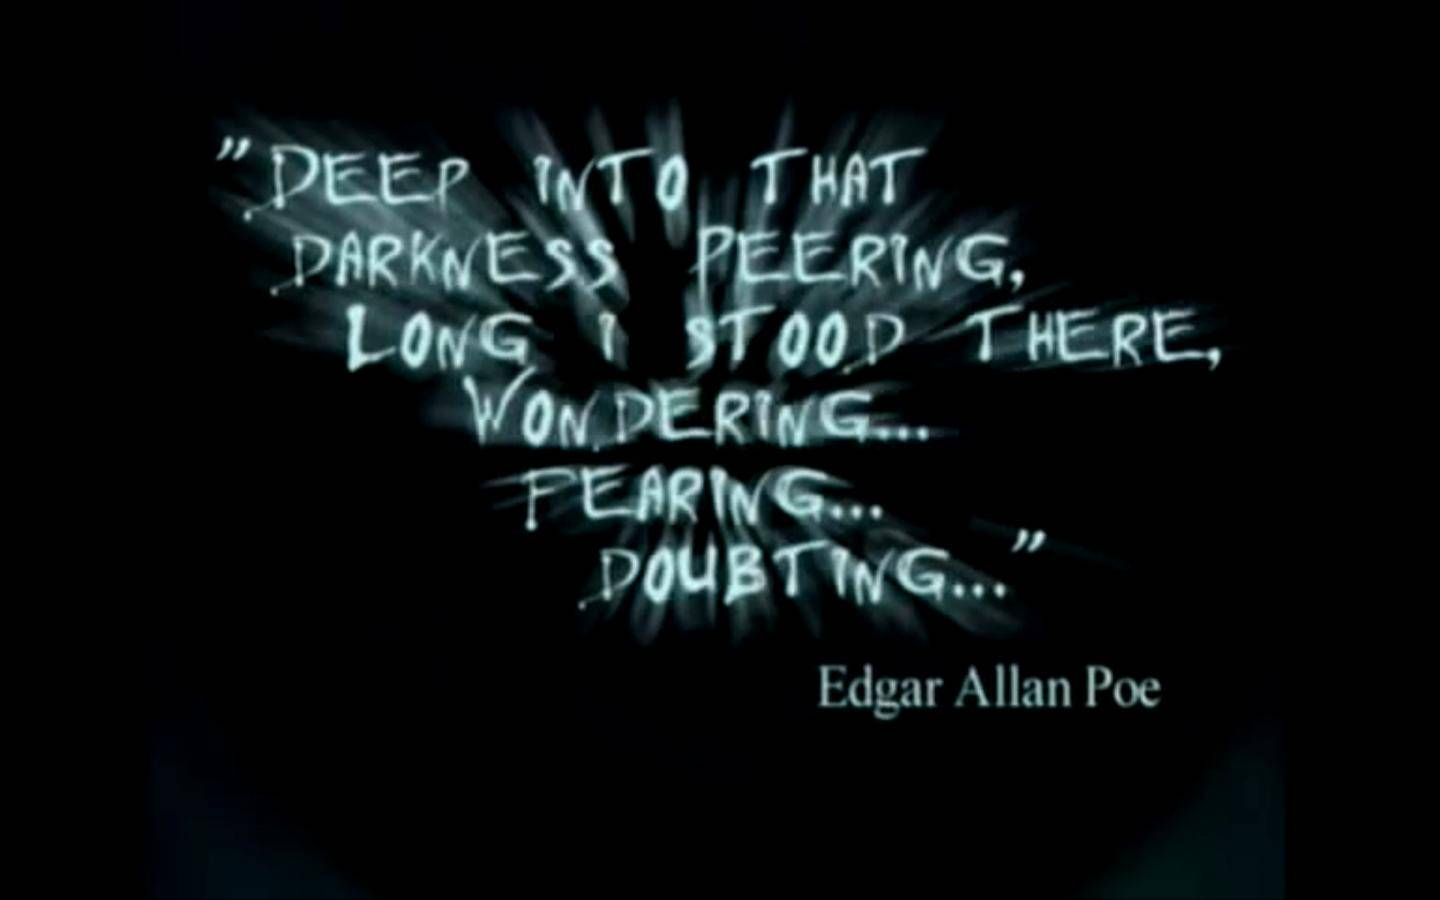 edgar allan poe quotes 13